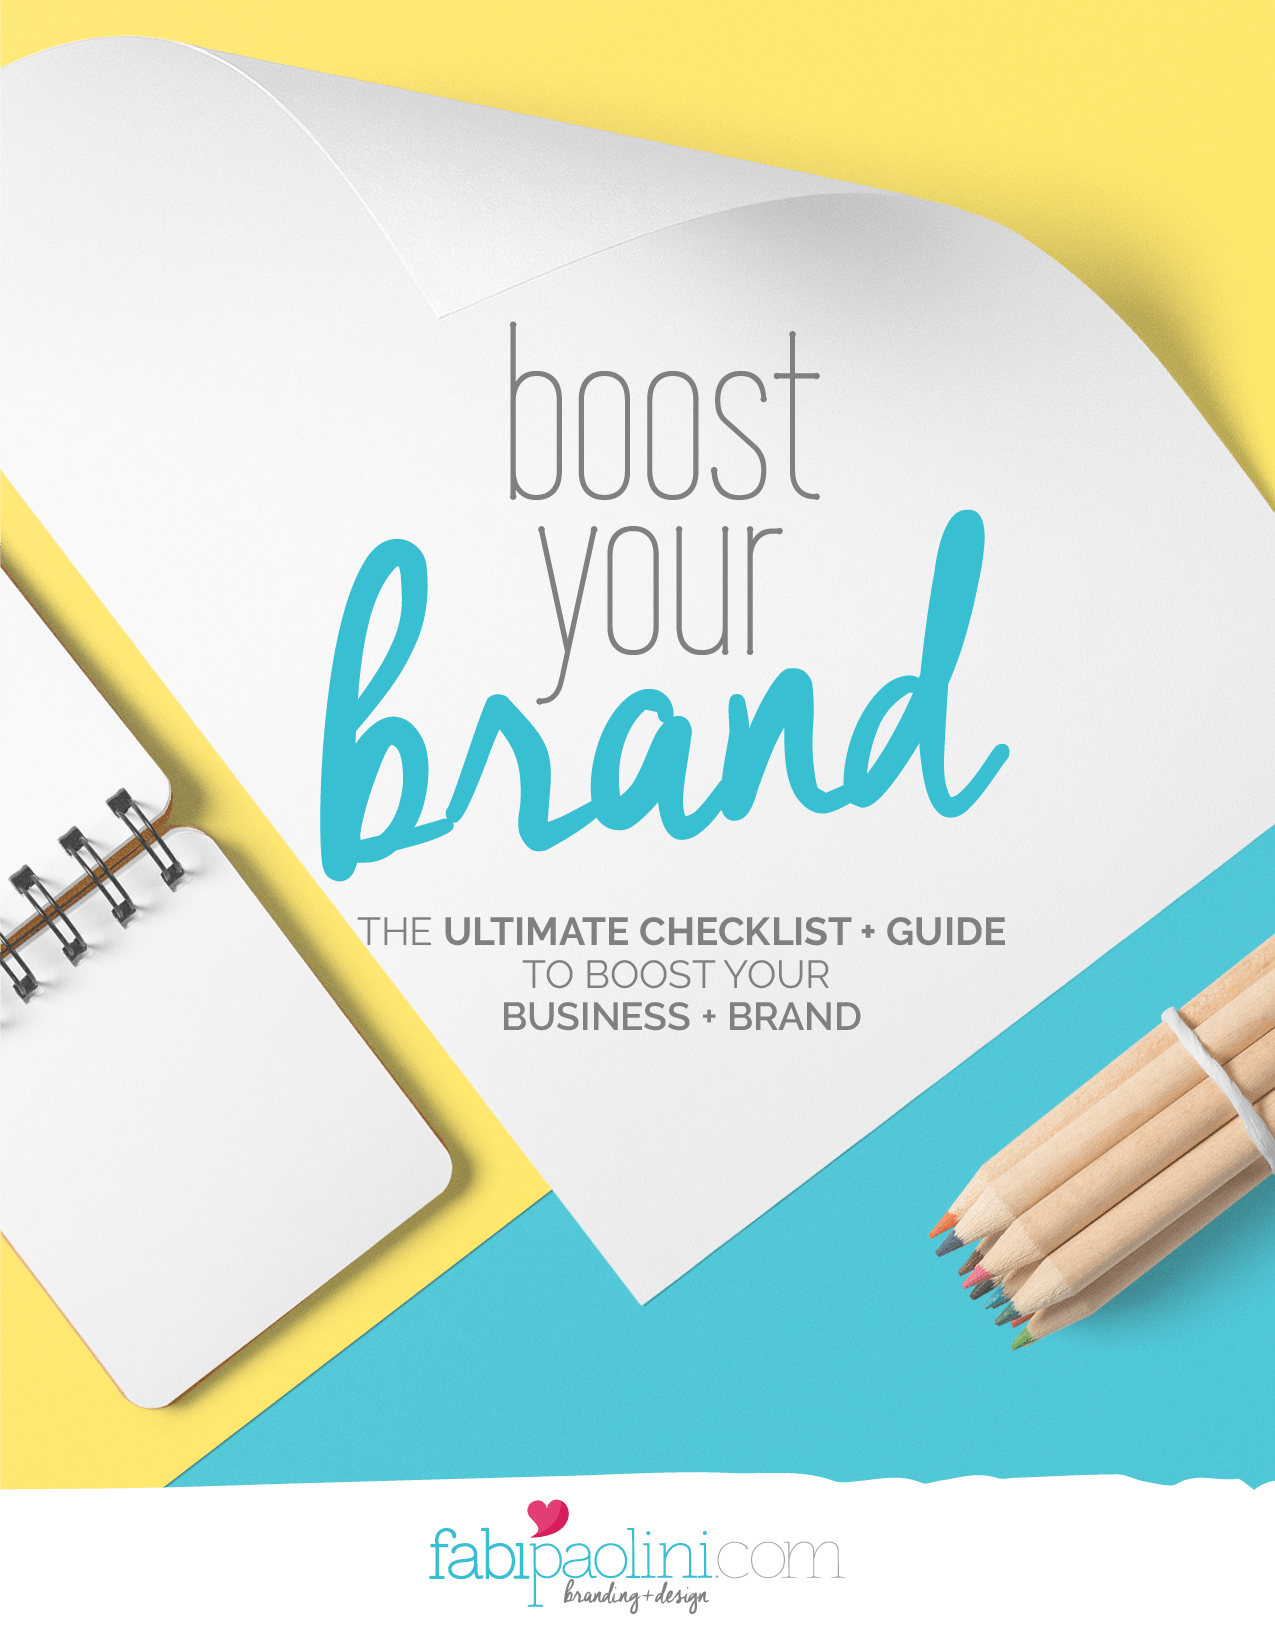 Follow the guide to Boost Your Brand. Ultimate checklist and guide for entrepreneurs to build their brands + business through branding, design, social media, sharing, content creation, sales funnels. Tips, ideas, advice on Brand building